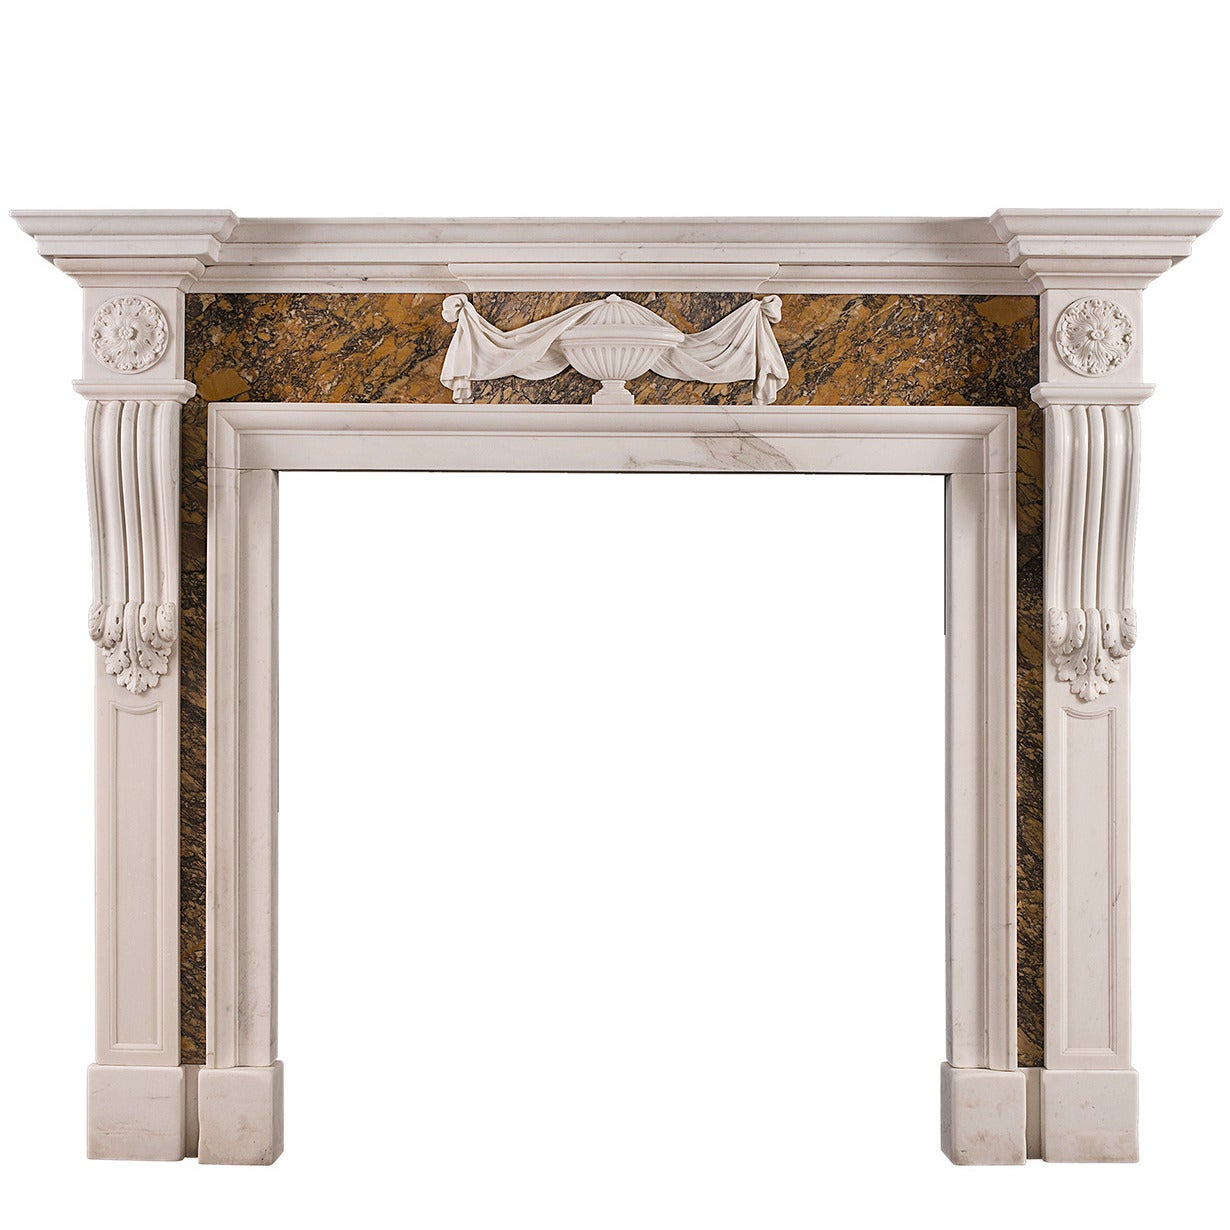 Georgian Style Chimneypiece in Statuary and Siena Marble For Sale